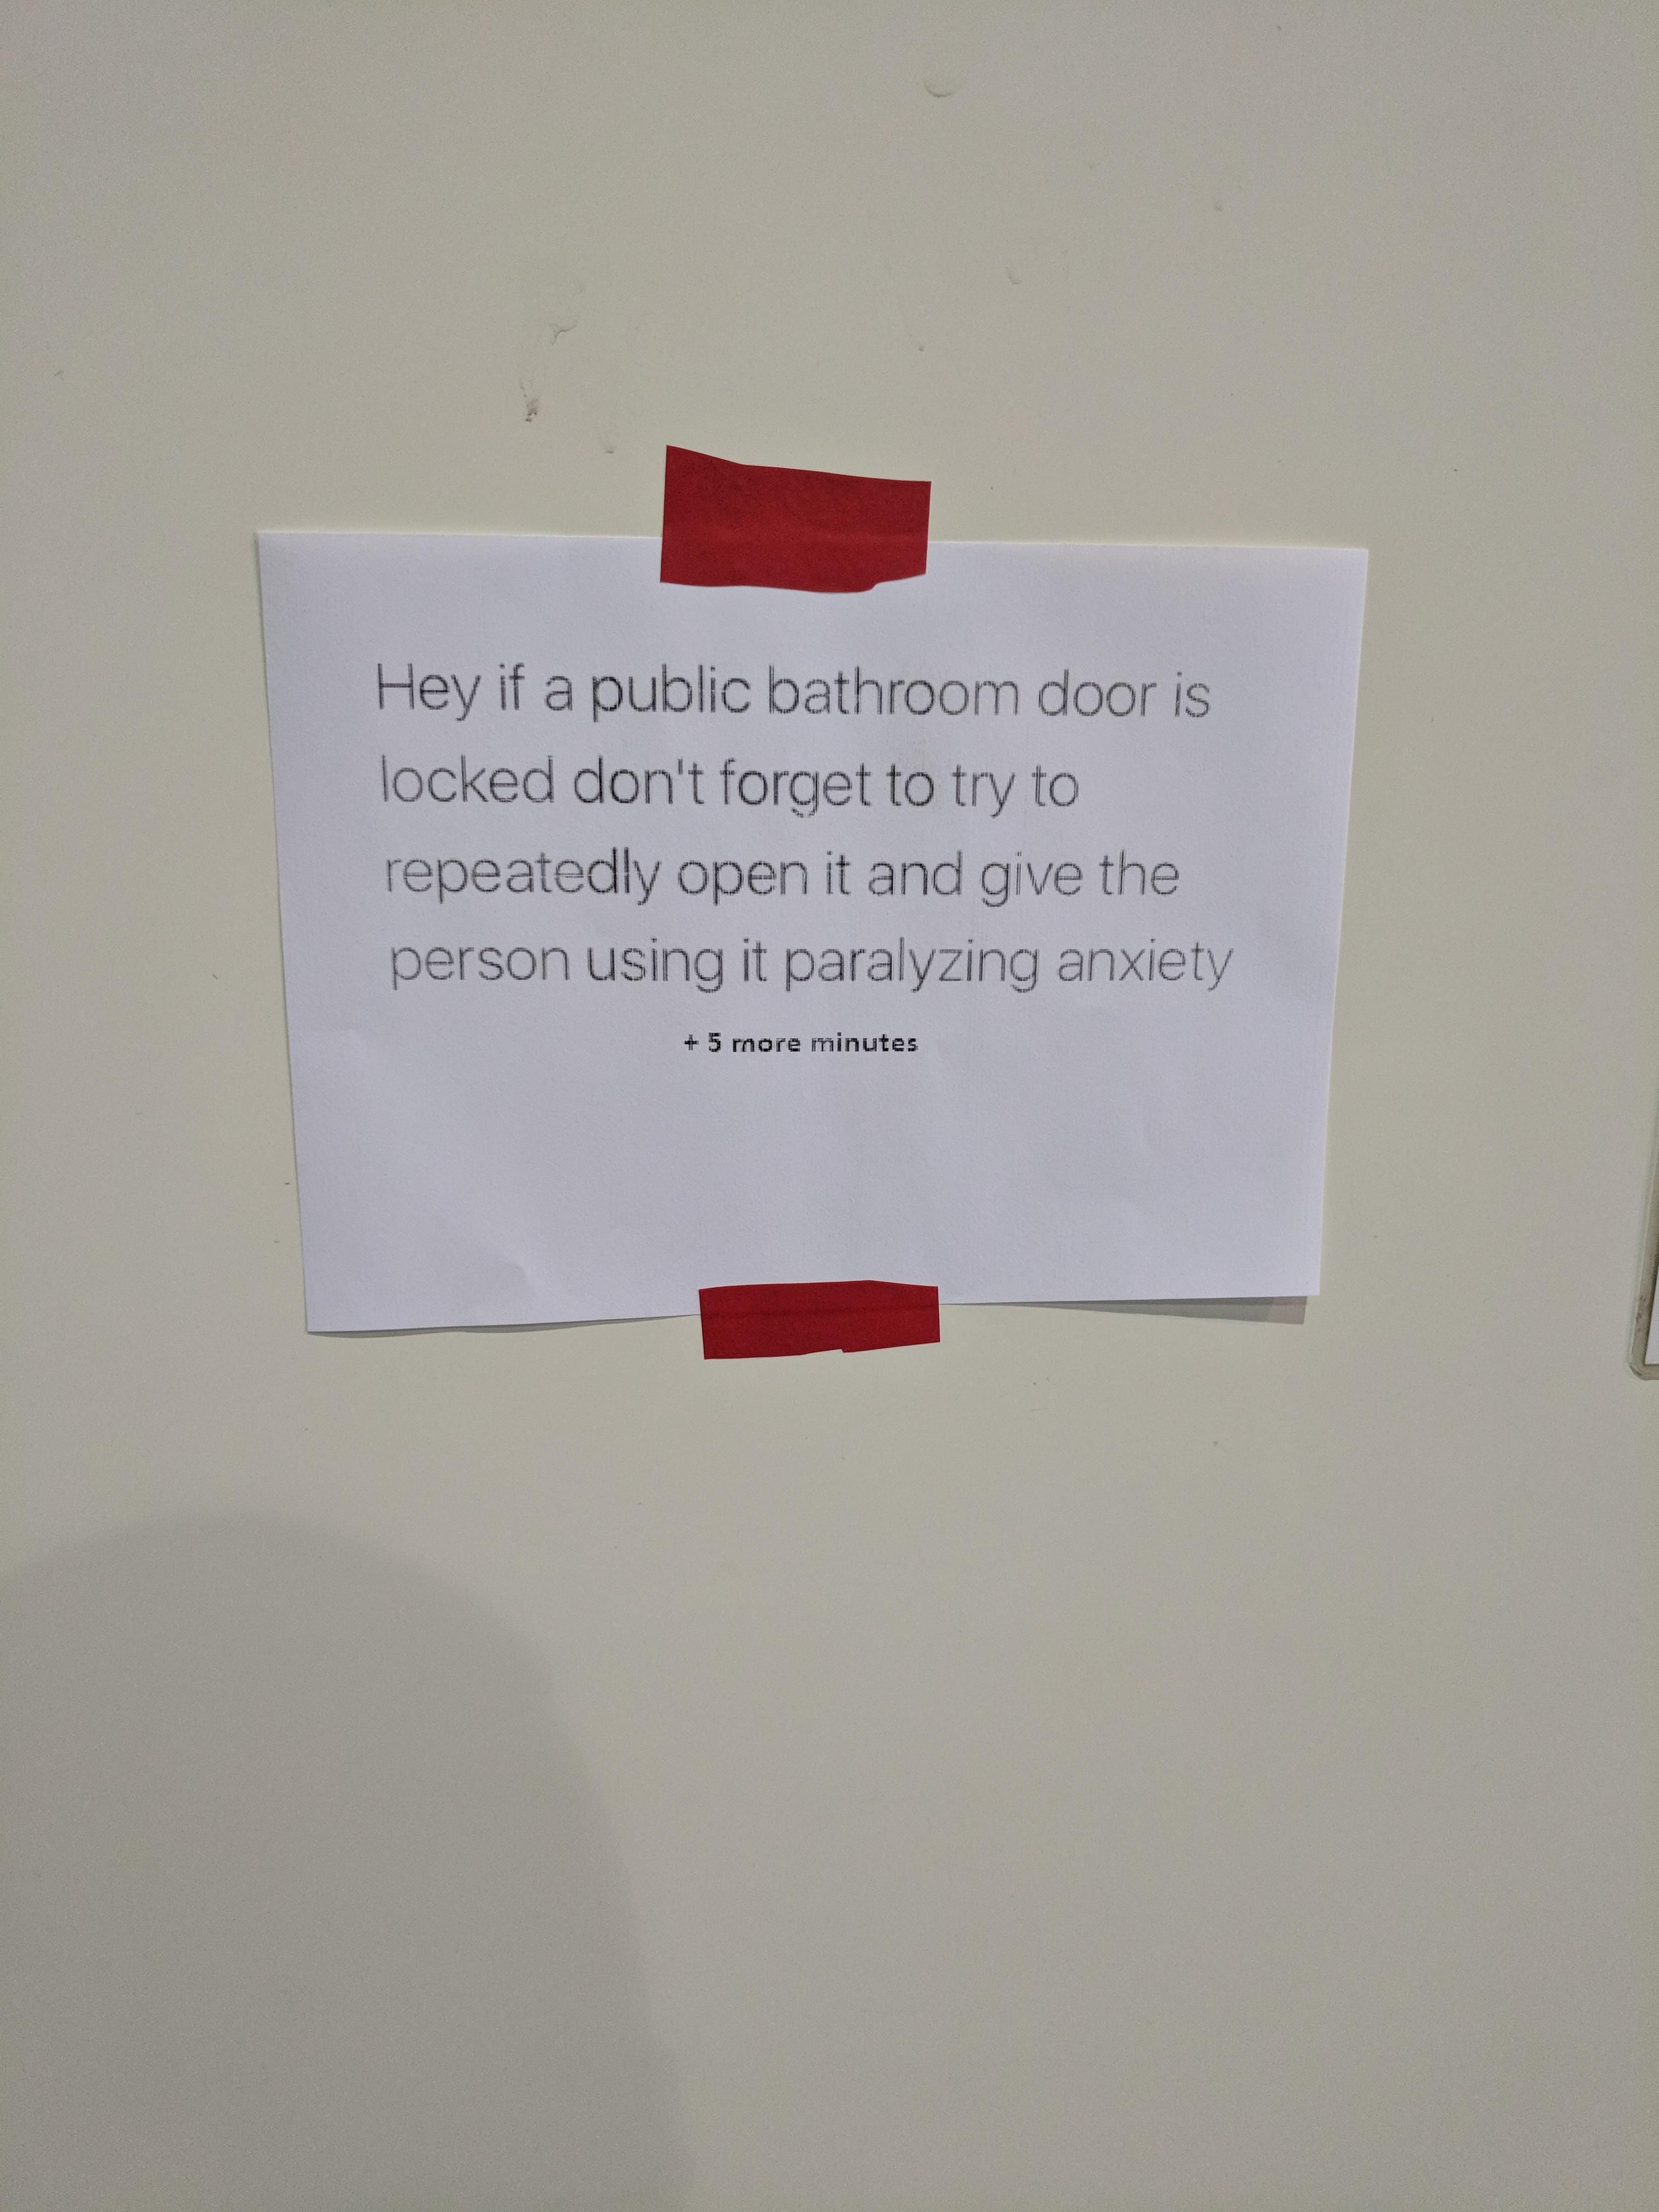 Came to work today and saw this note on the bathroom door